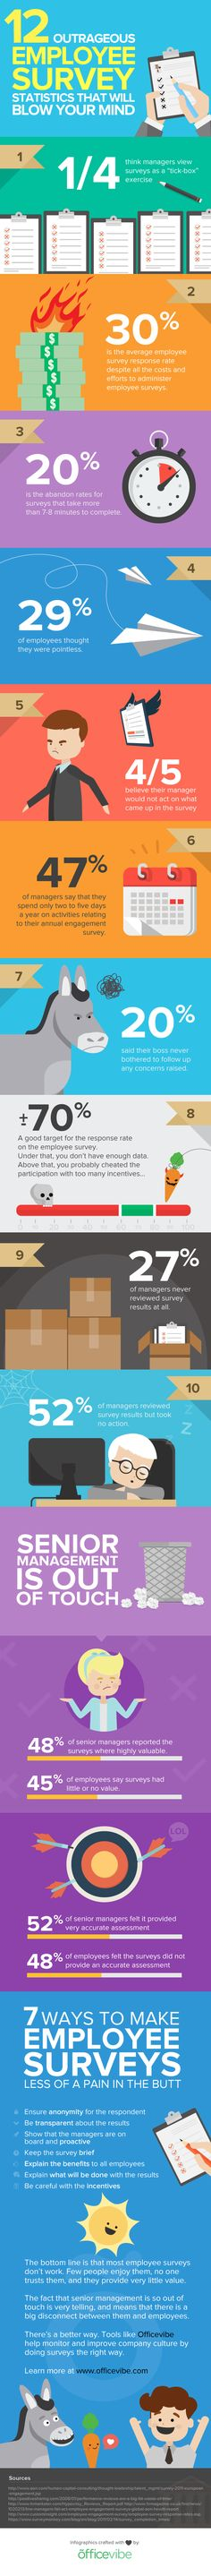 12 Outrageous Employee Survey Statistics That Will Blow Your Mind (Infographic)